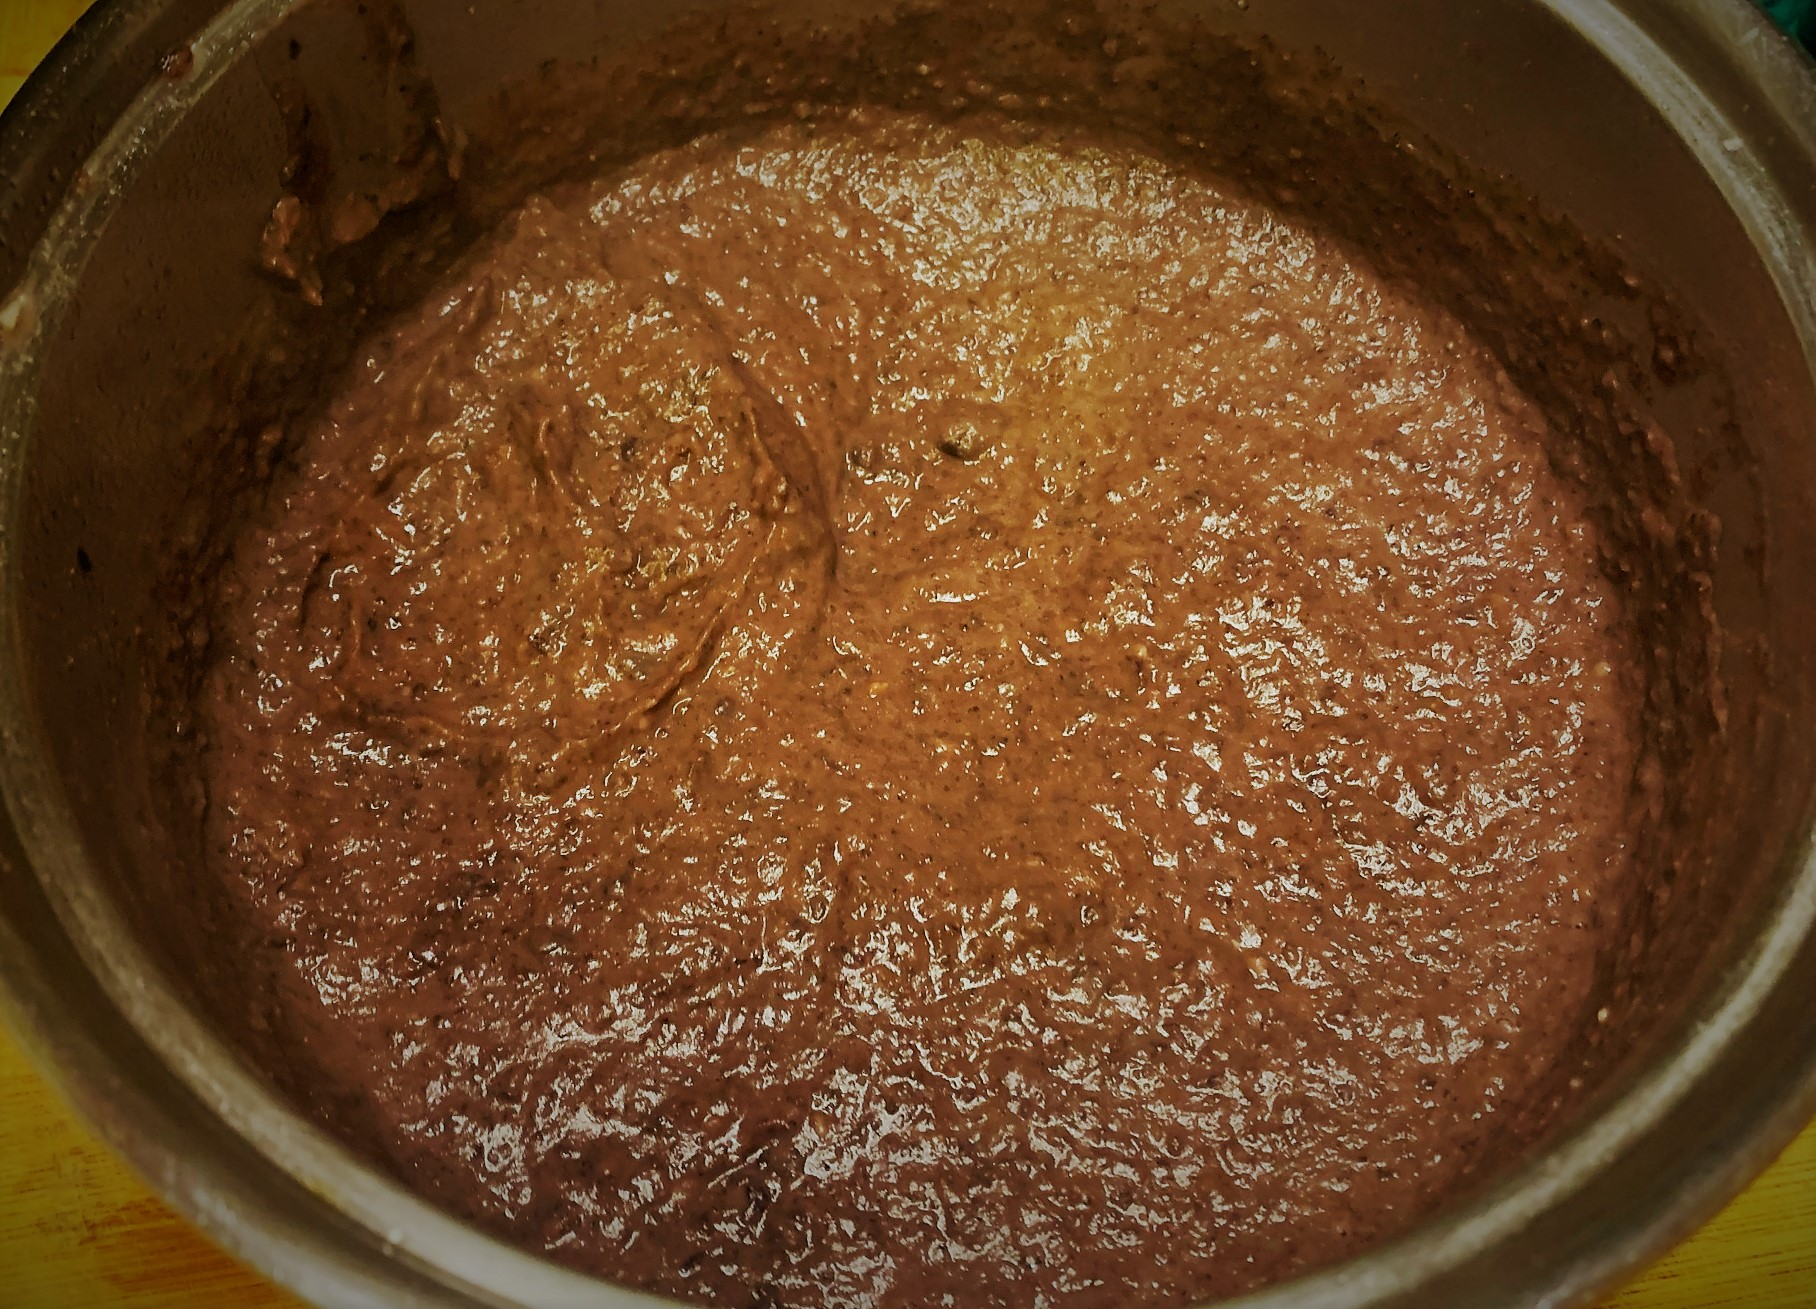 The completed Black Bean Puree for our Tostada de Chorizo from Las Posadas Holiday Kitchen